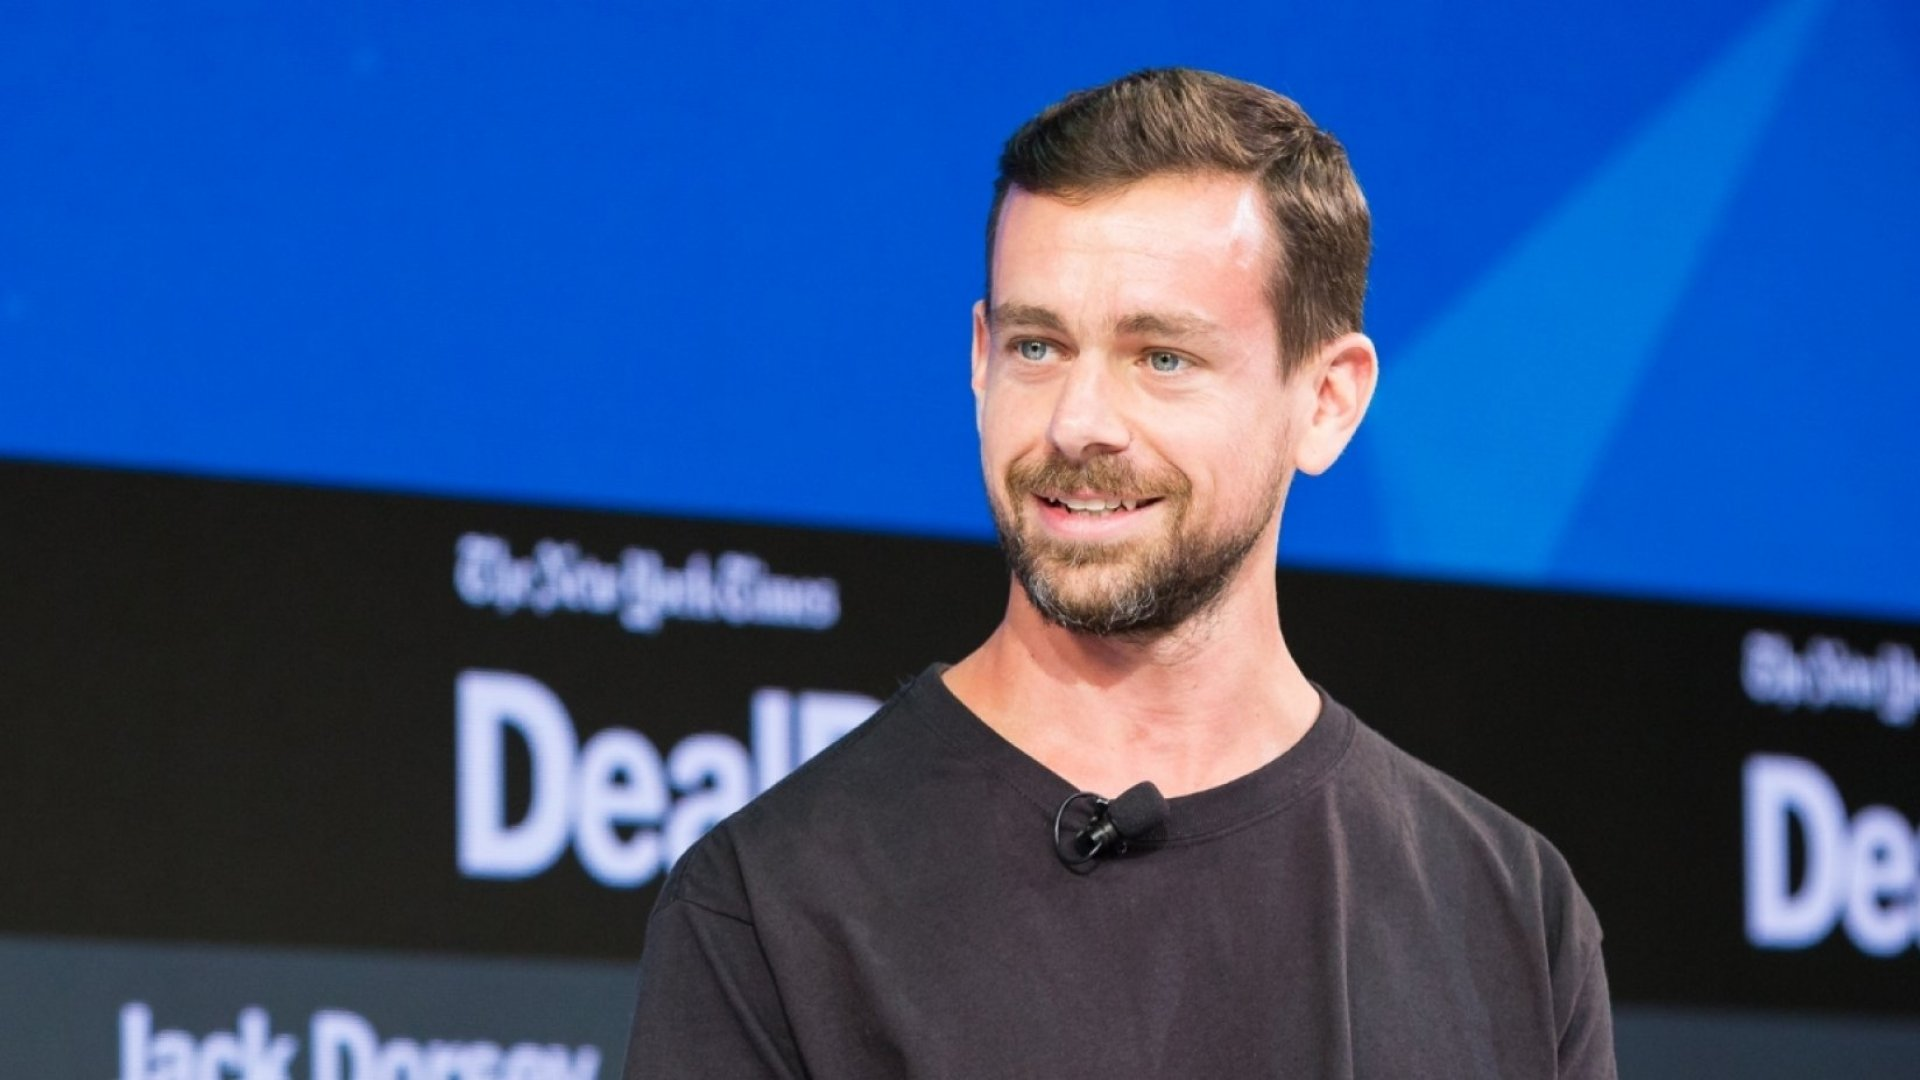 Twitter Reports Its First-Ever Quarterly Profit, Earning $91 Million